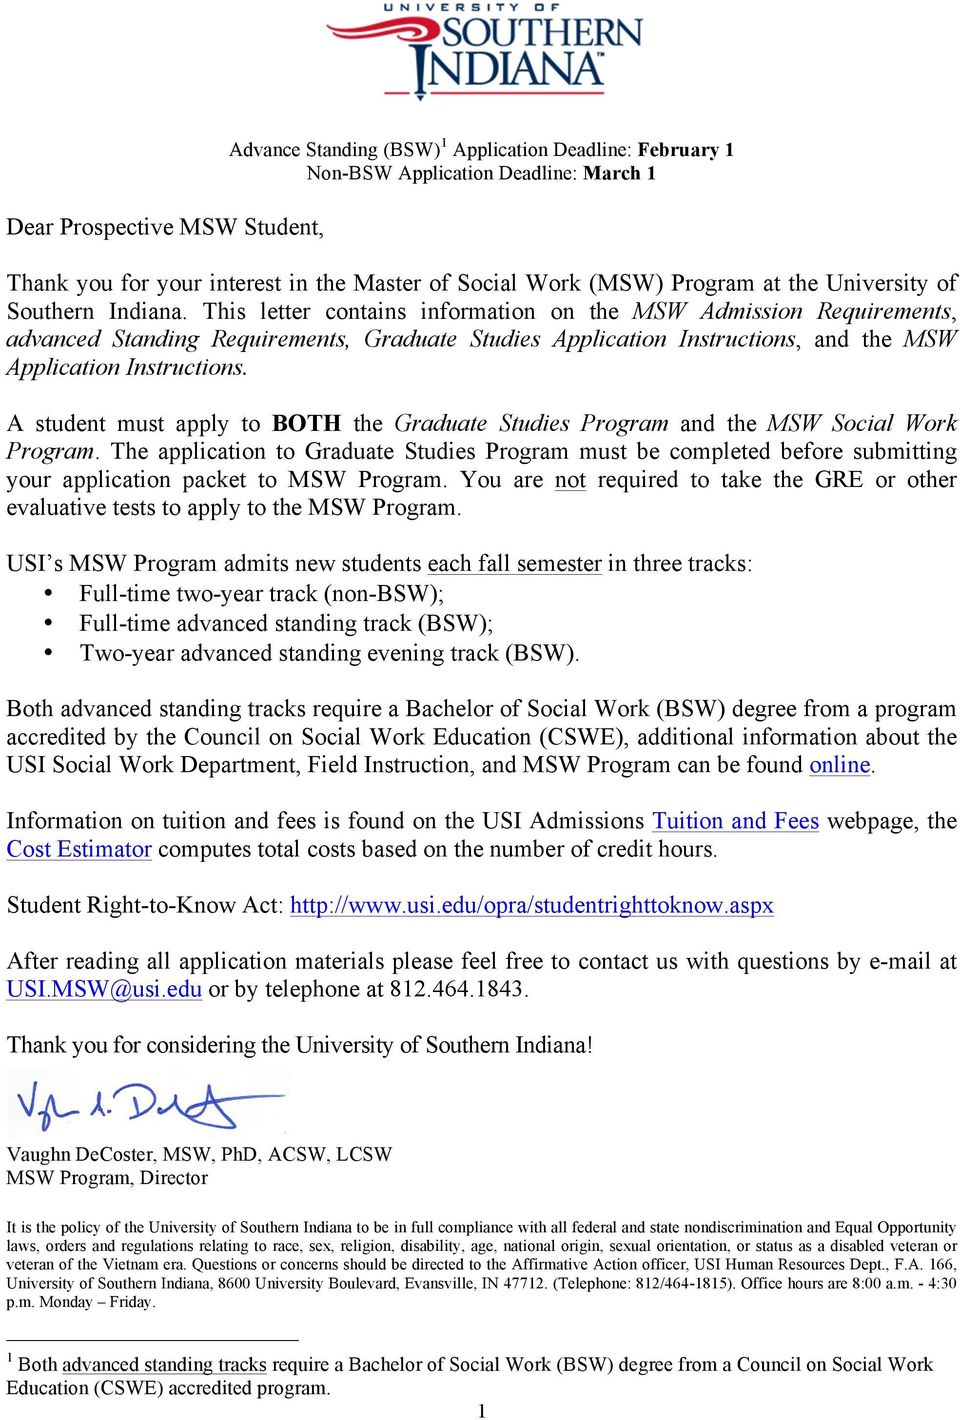 This letter contains information on the MSW Admission Requirements, advanced Standing Requirements, Graduate Studies Application Instructions, and the MSW Application Instructions.